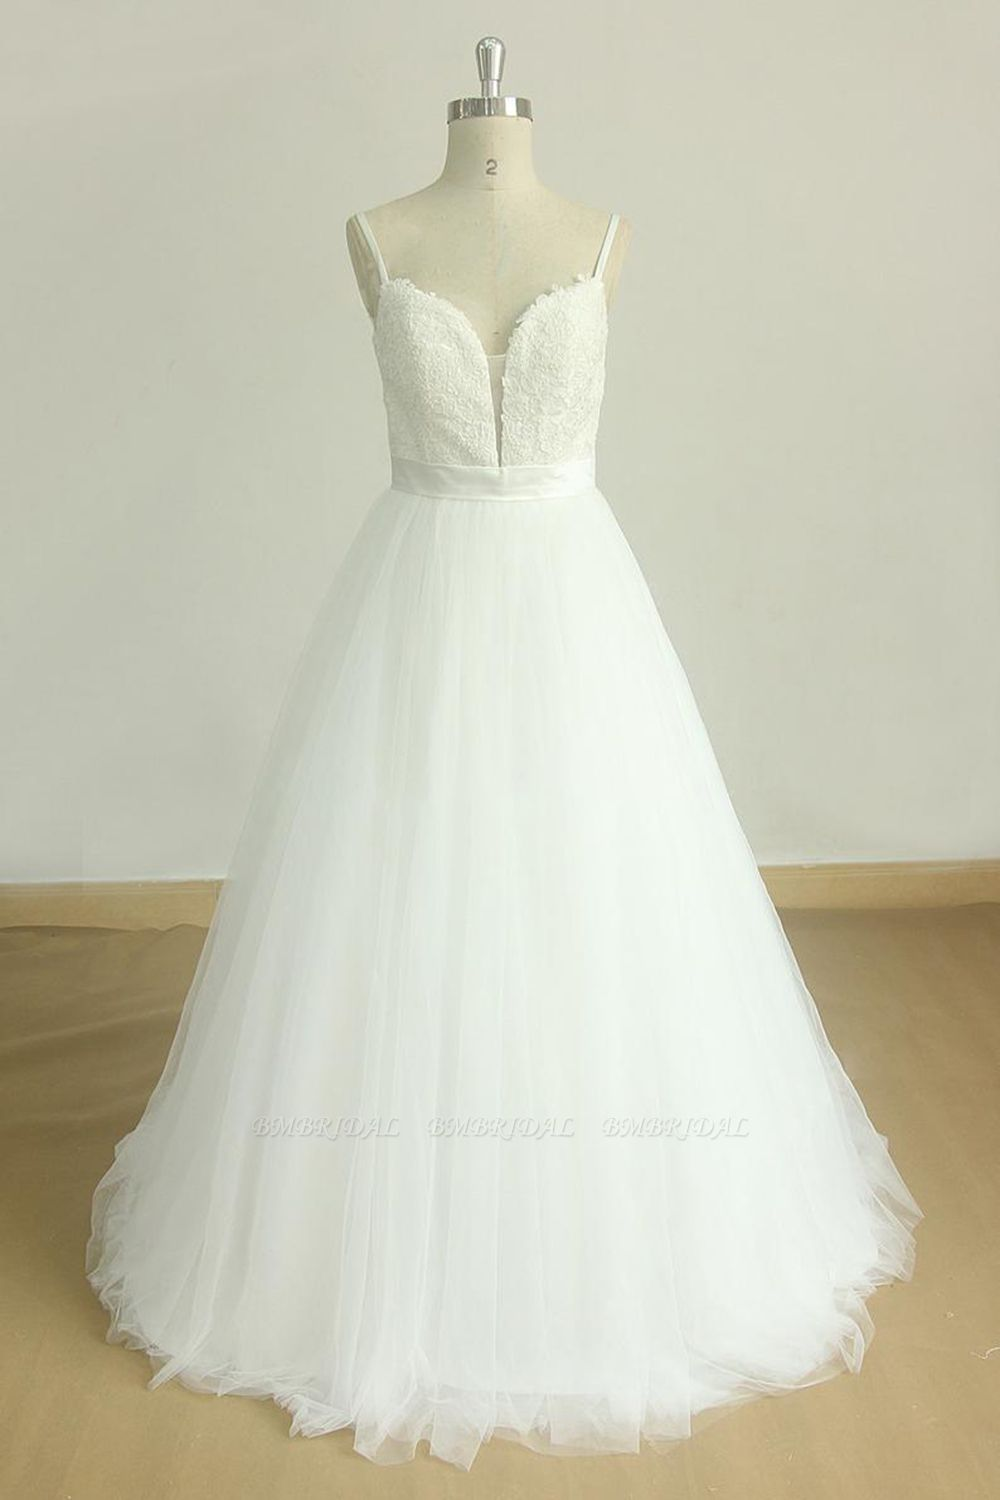 Chic Spaghetti Straps V-Neck Wedding Dresses White Tulle Appliques Bridal Gowns Online